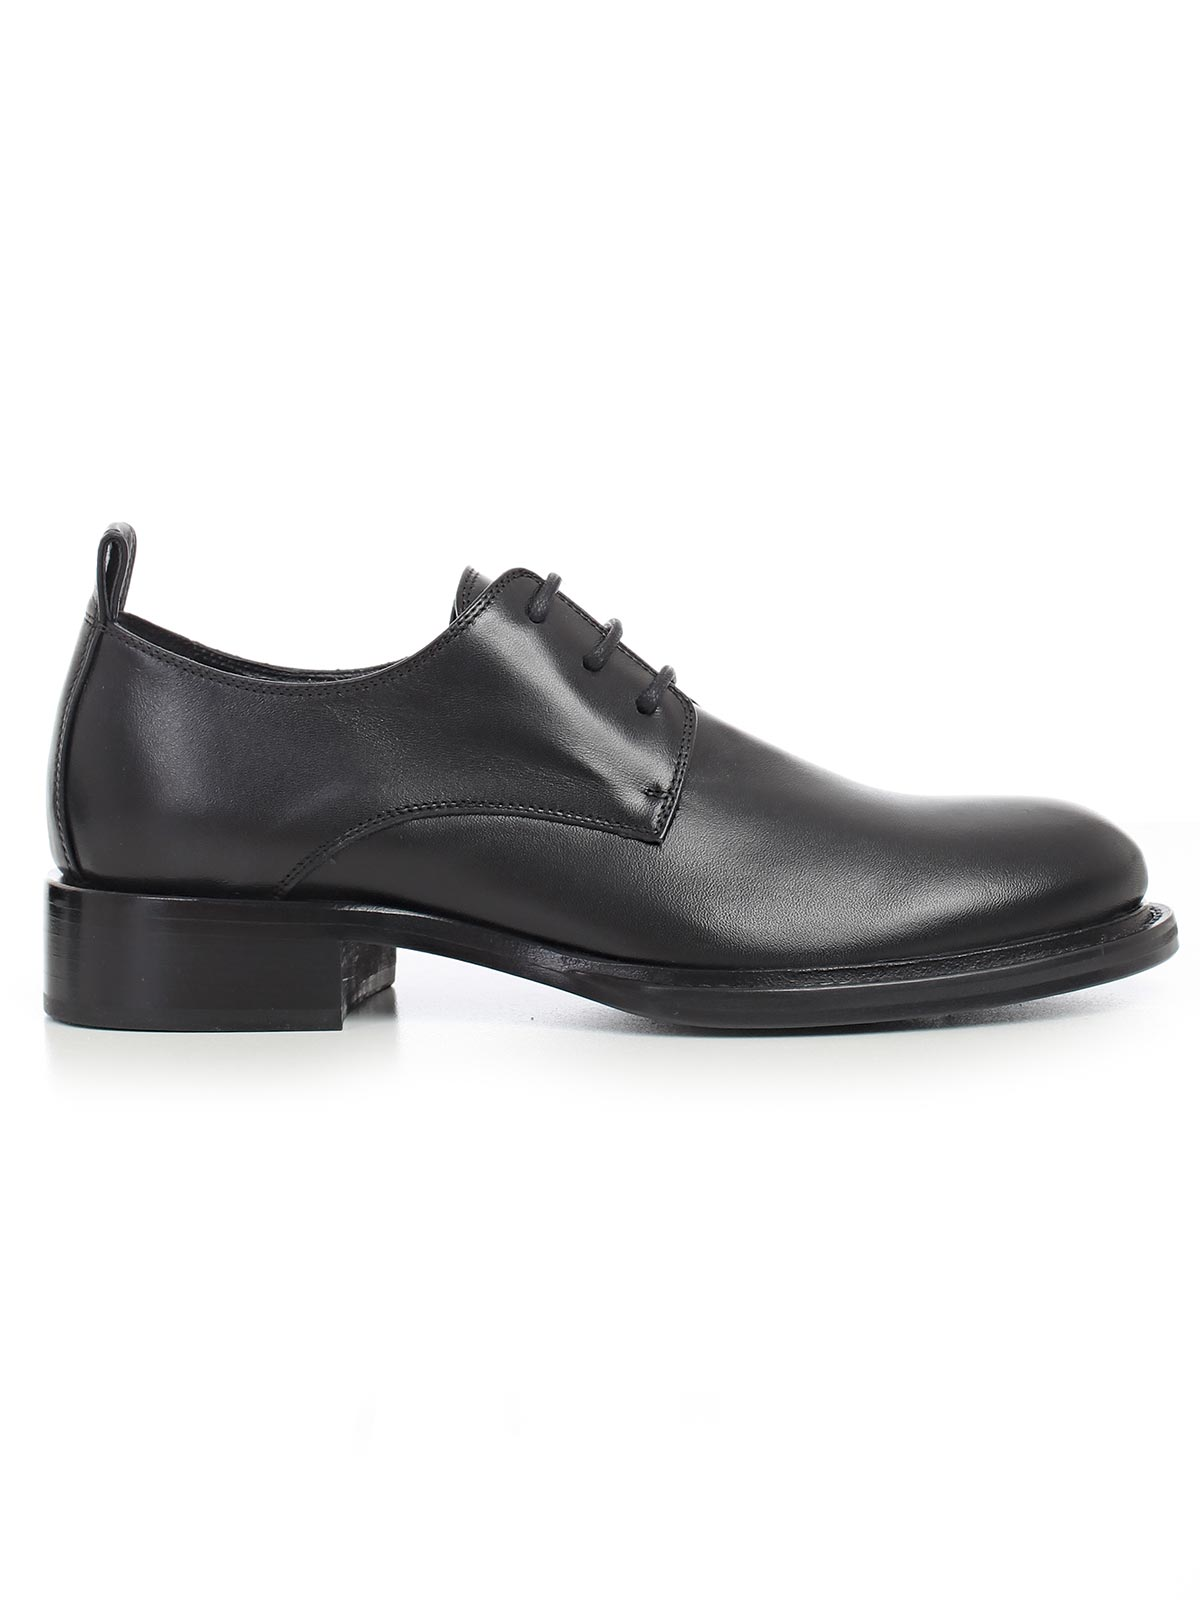 Picture of Ann Demeulemester Lace Ups Shoes